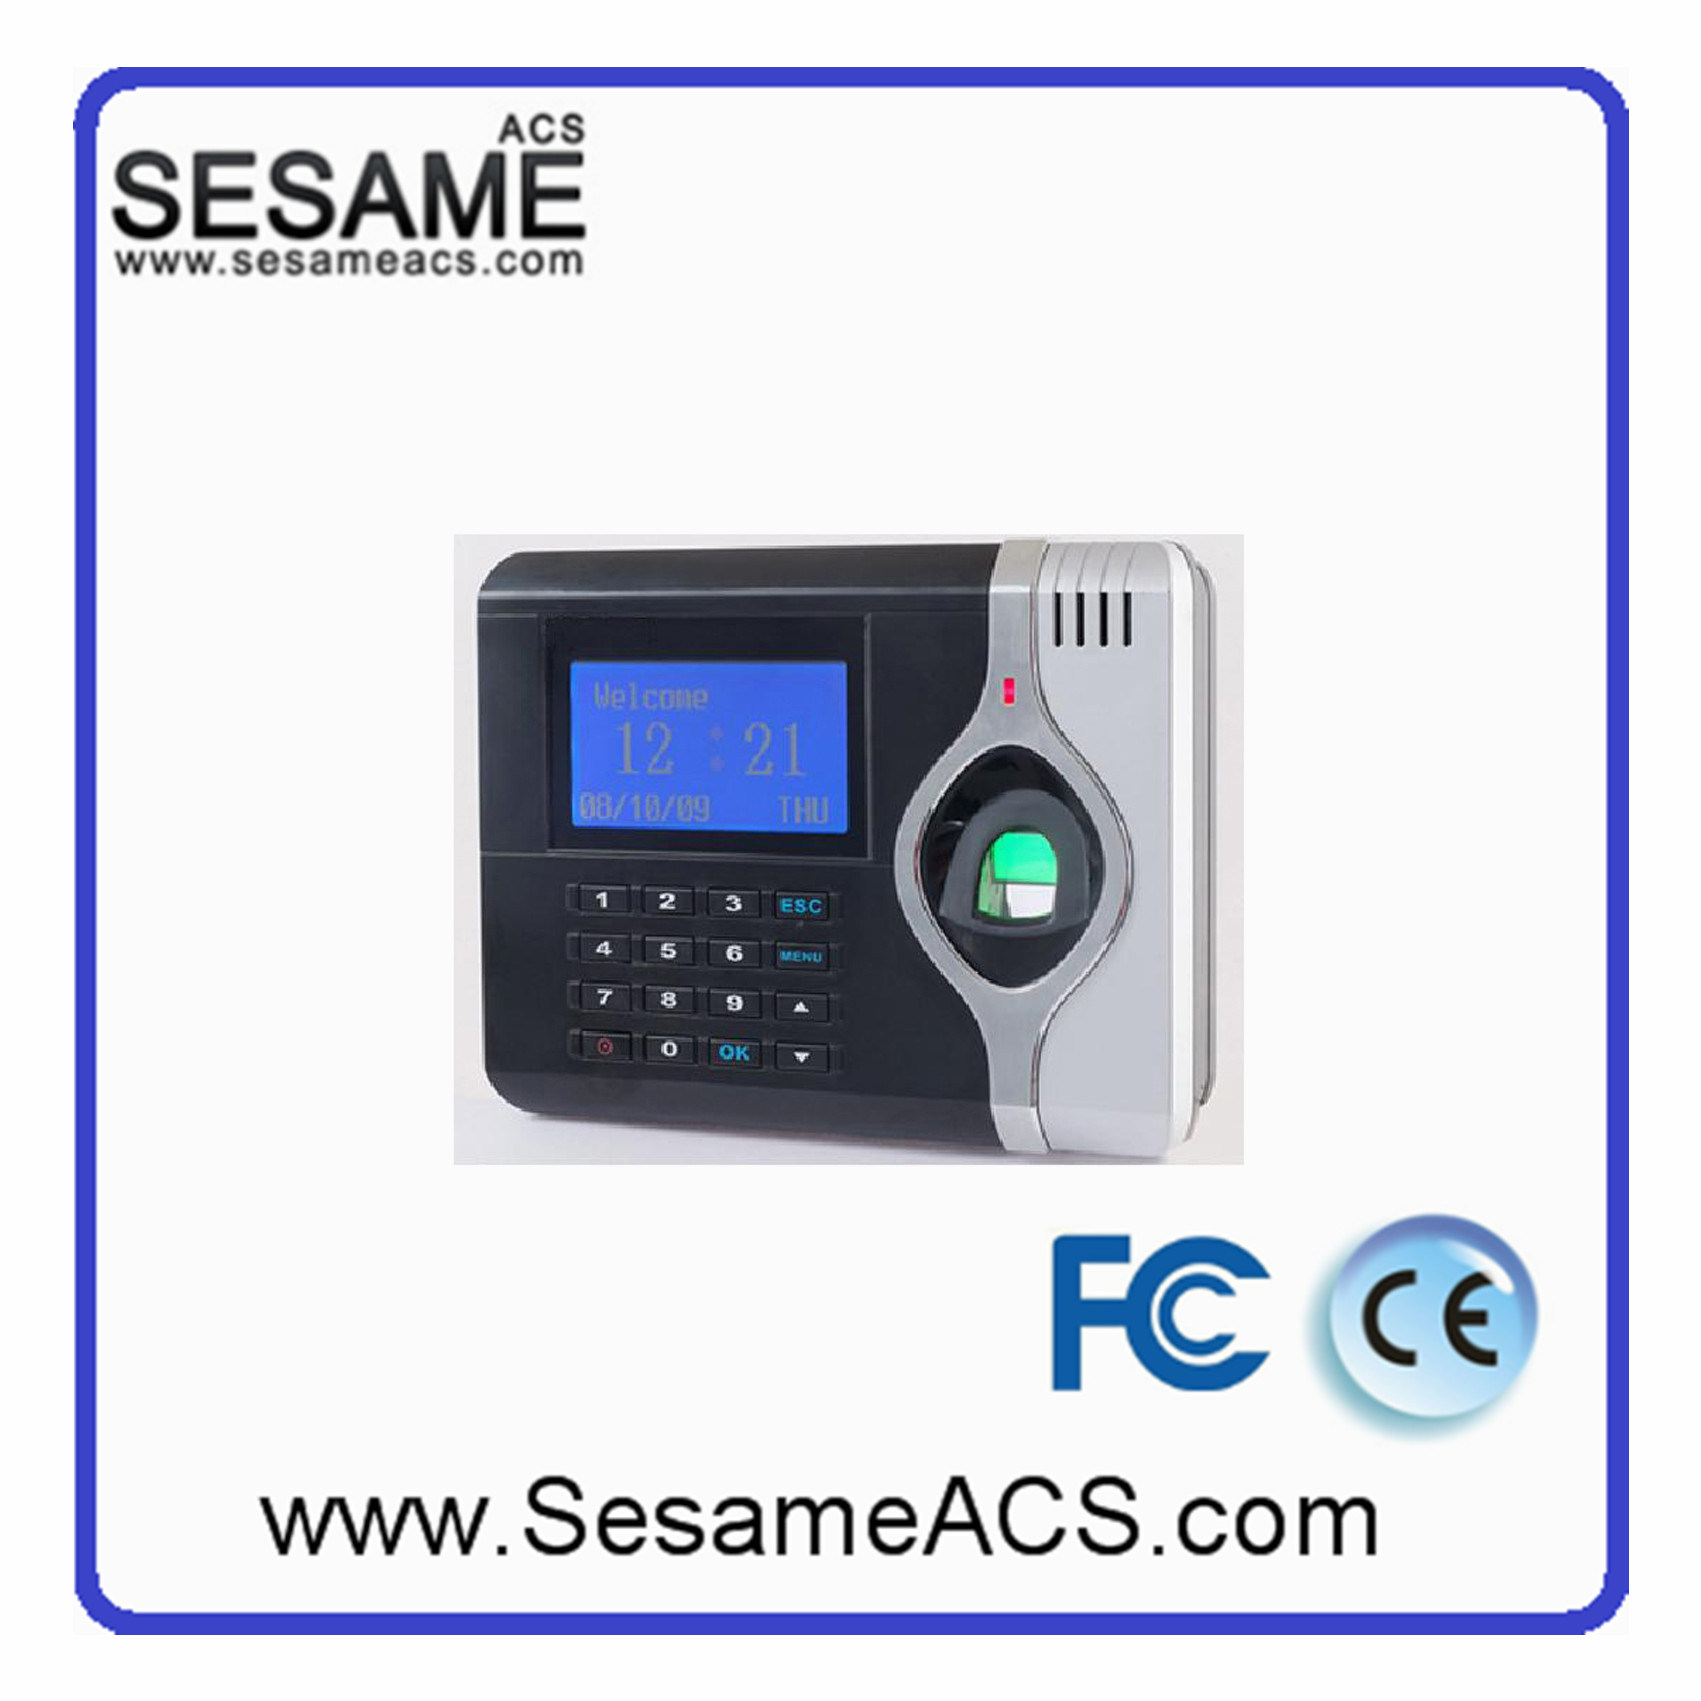 80000 Records Access Control with Fingerprint (SOTA710C)